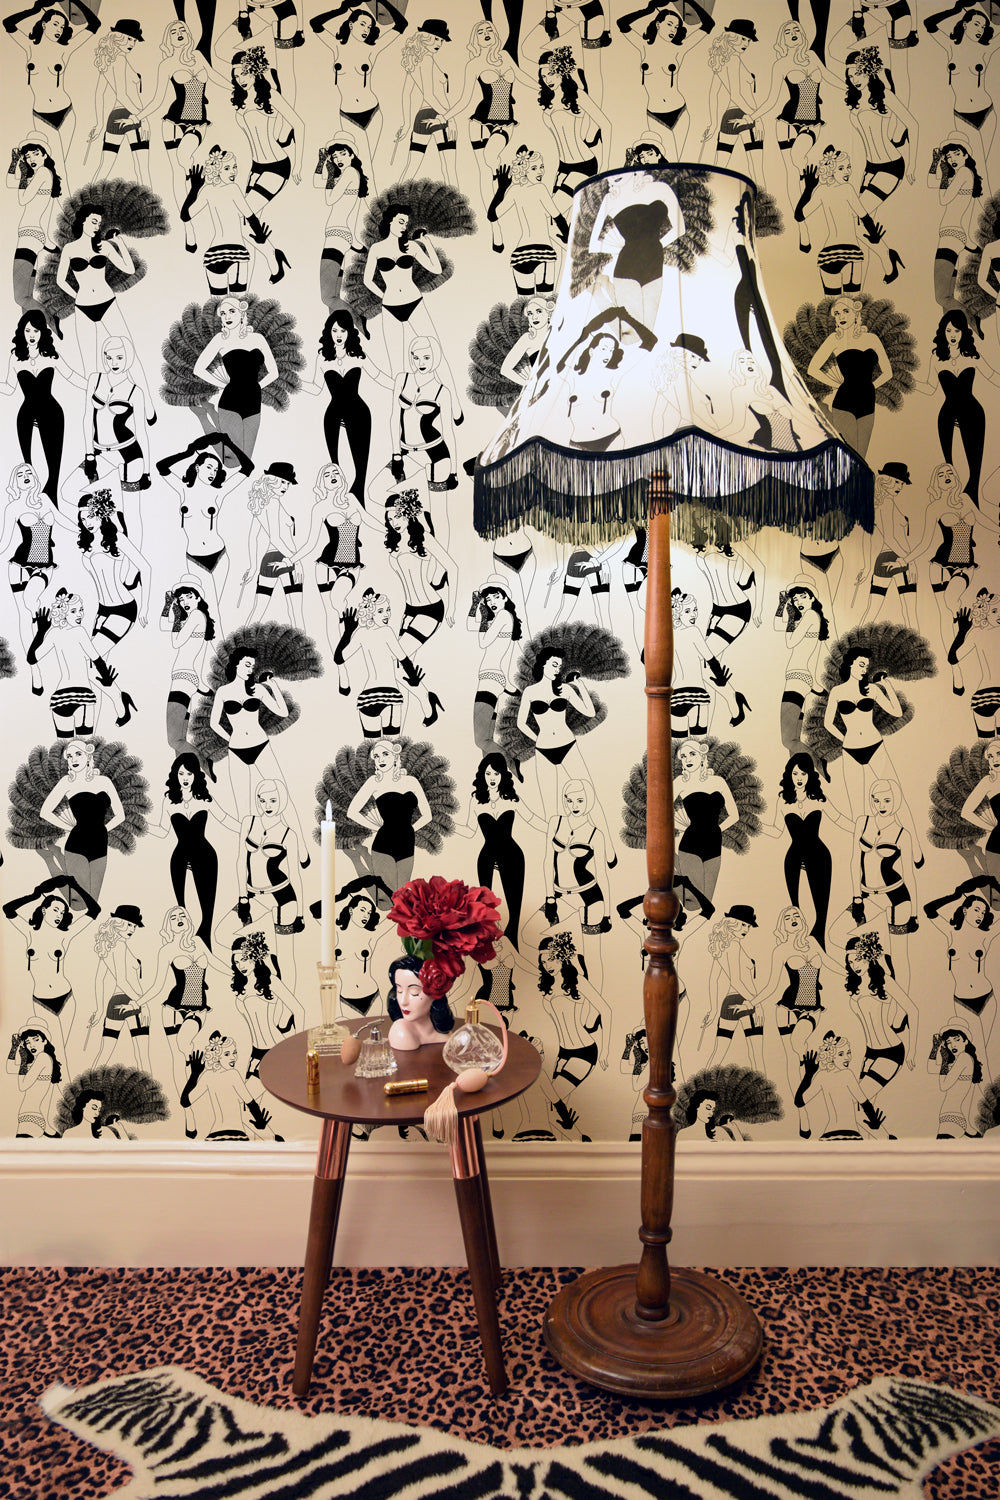 Famous Burlesque Wallpaper by Dupenny - come to the cabaret